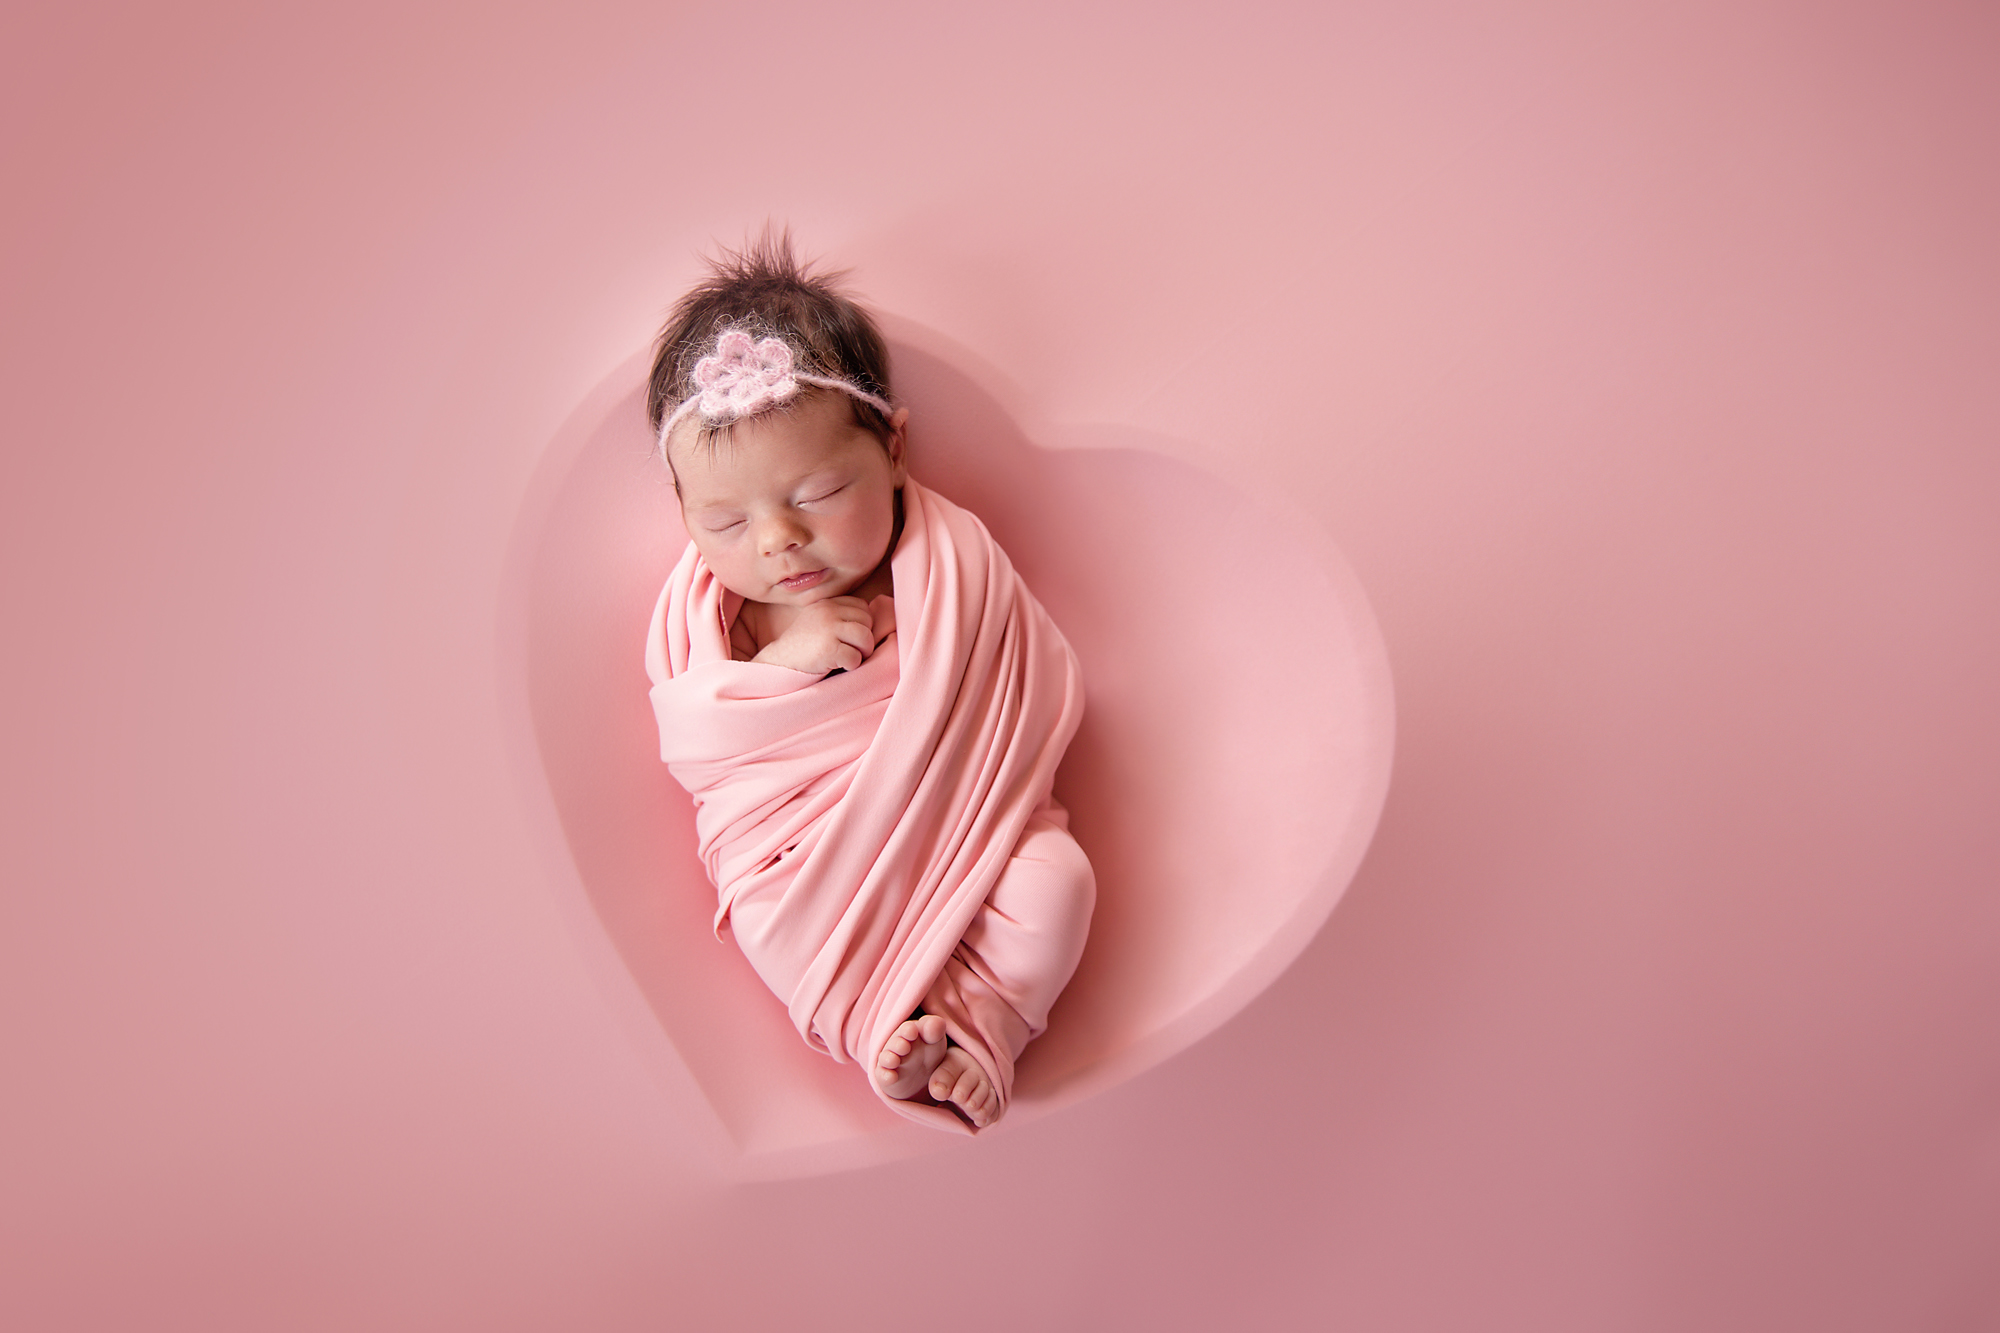 Newborn baby girl photoshoot idea. Baby girl is posed in a heart bowl covered by pink material. Calgary newborn photographer.